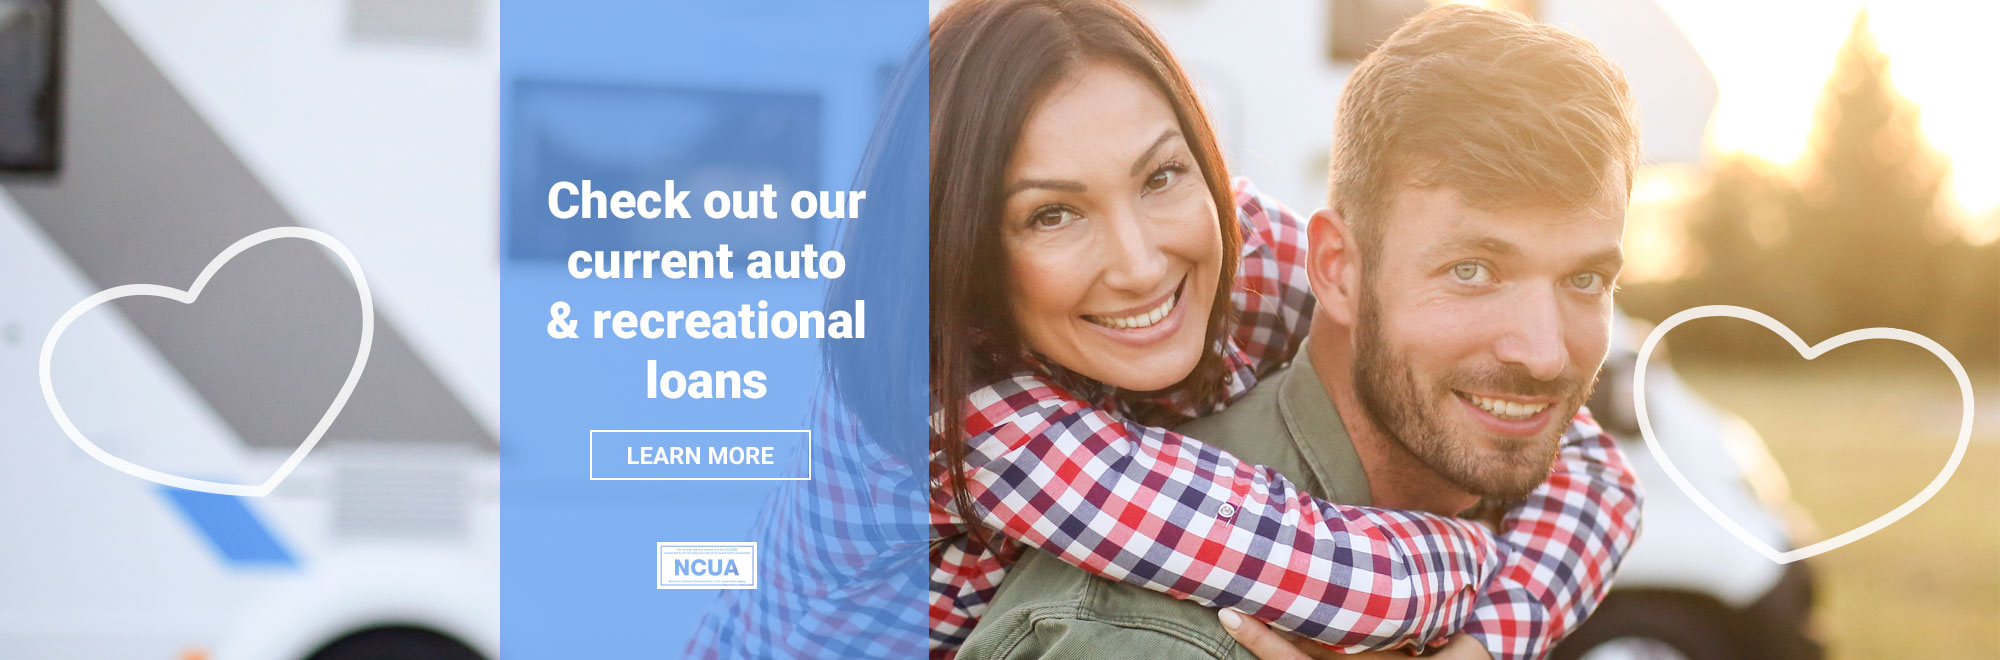 Check out our current auto & recreational loans